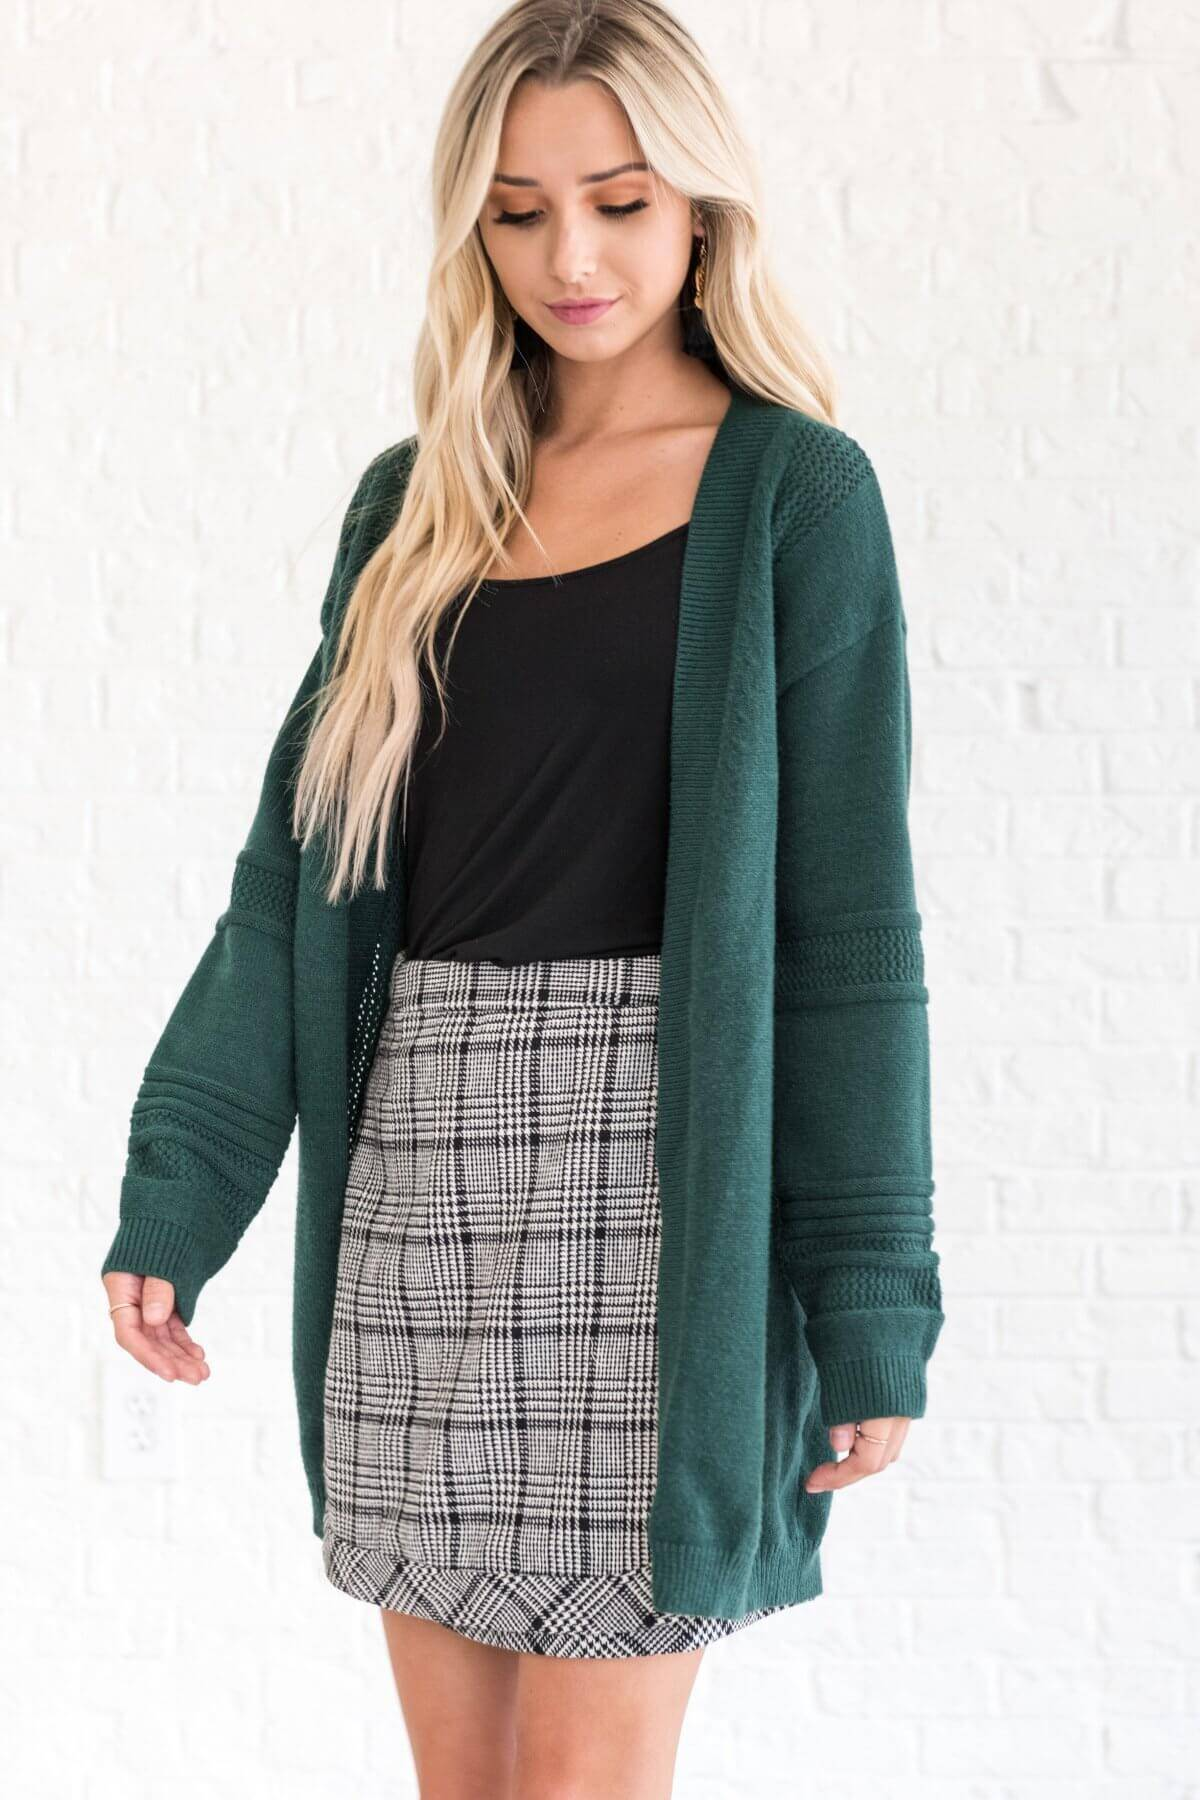 Forest Green Thick Warm Cozy Cardigans for Women